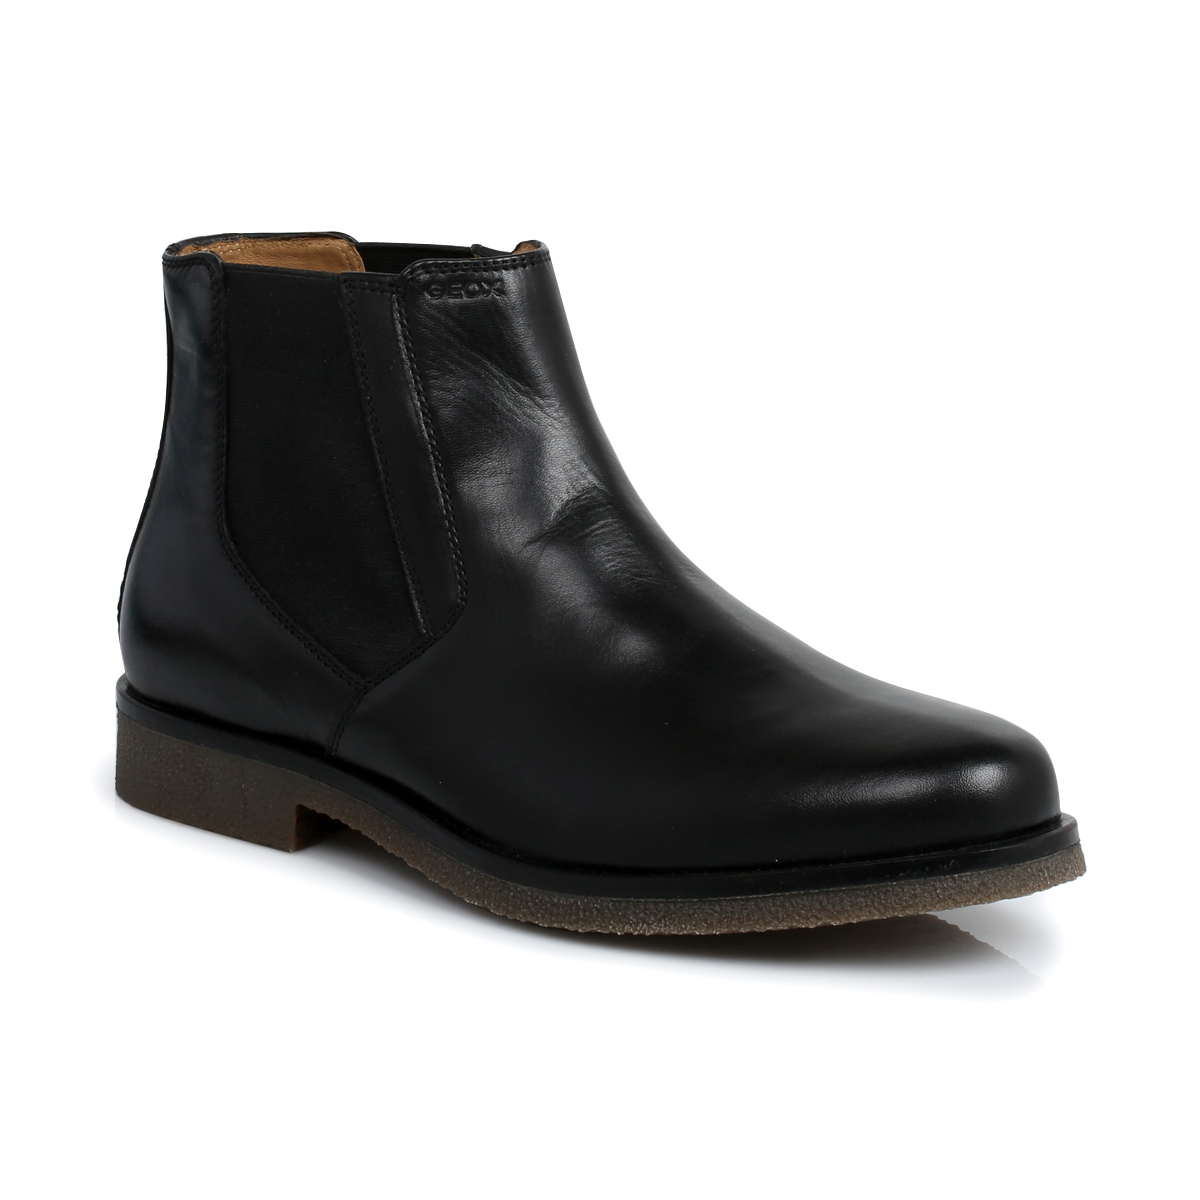 You searched for: leather ankle boots mens! Etsy is the home to thousands of handmade, vintage, and one-of-a-kind products and gifts related to your search. No matter what you're looking for or where you are in the world, our global marketplace of sellers can help you .